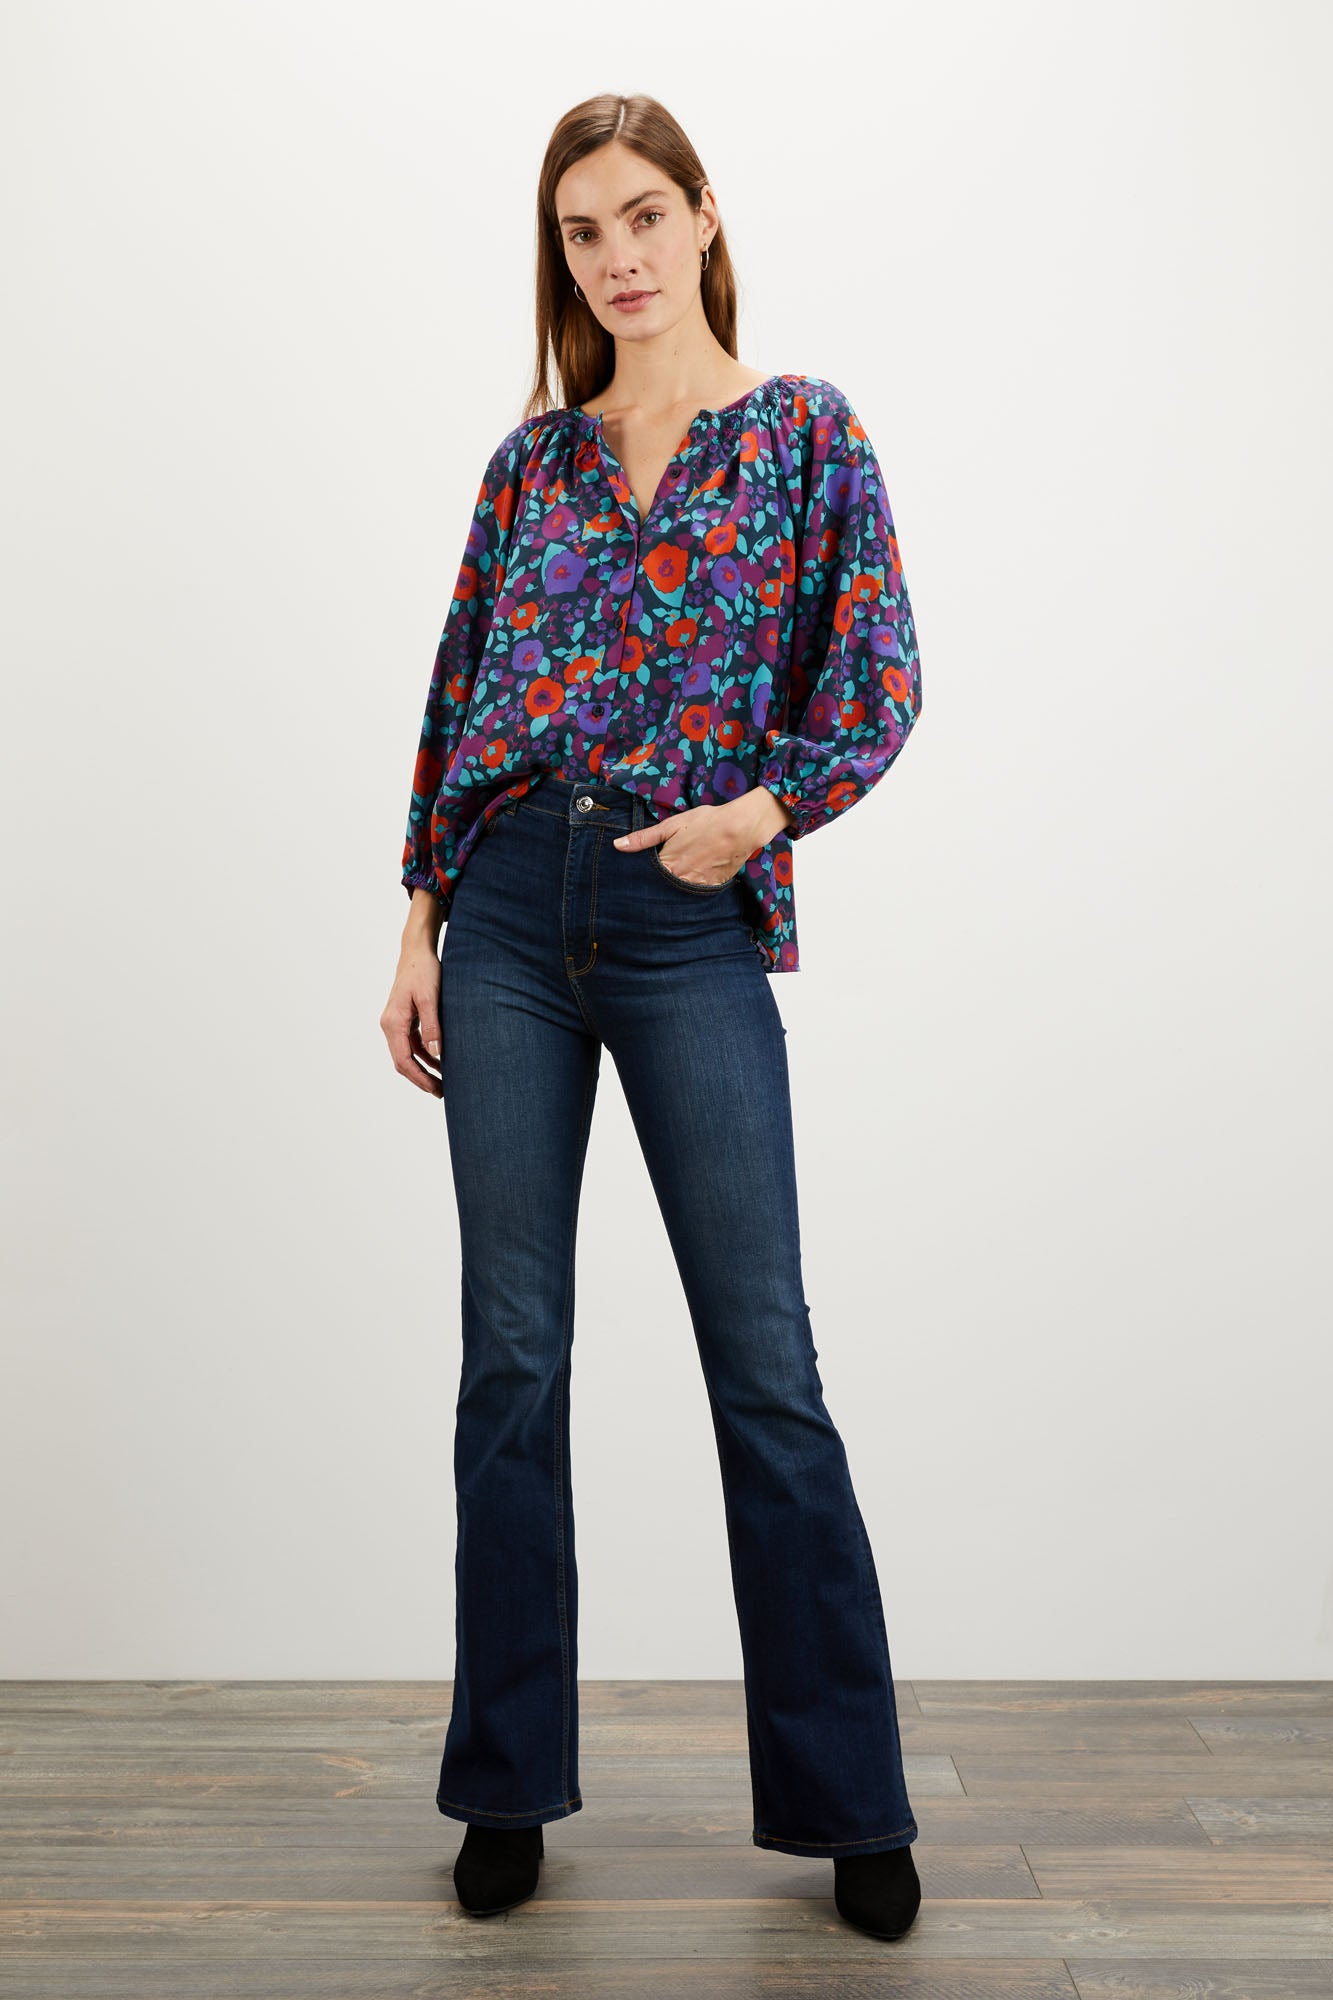 The Classic Blouse | American Woman Navy